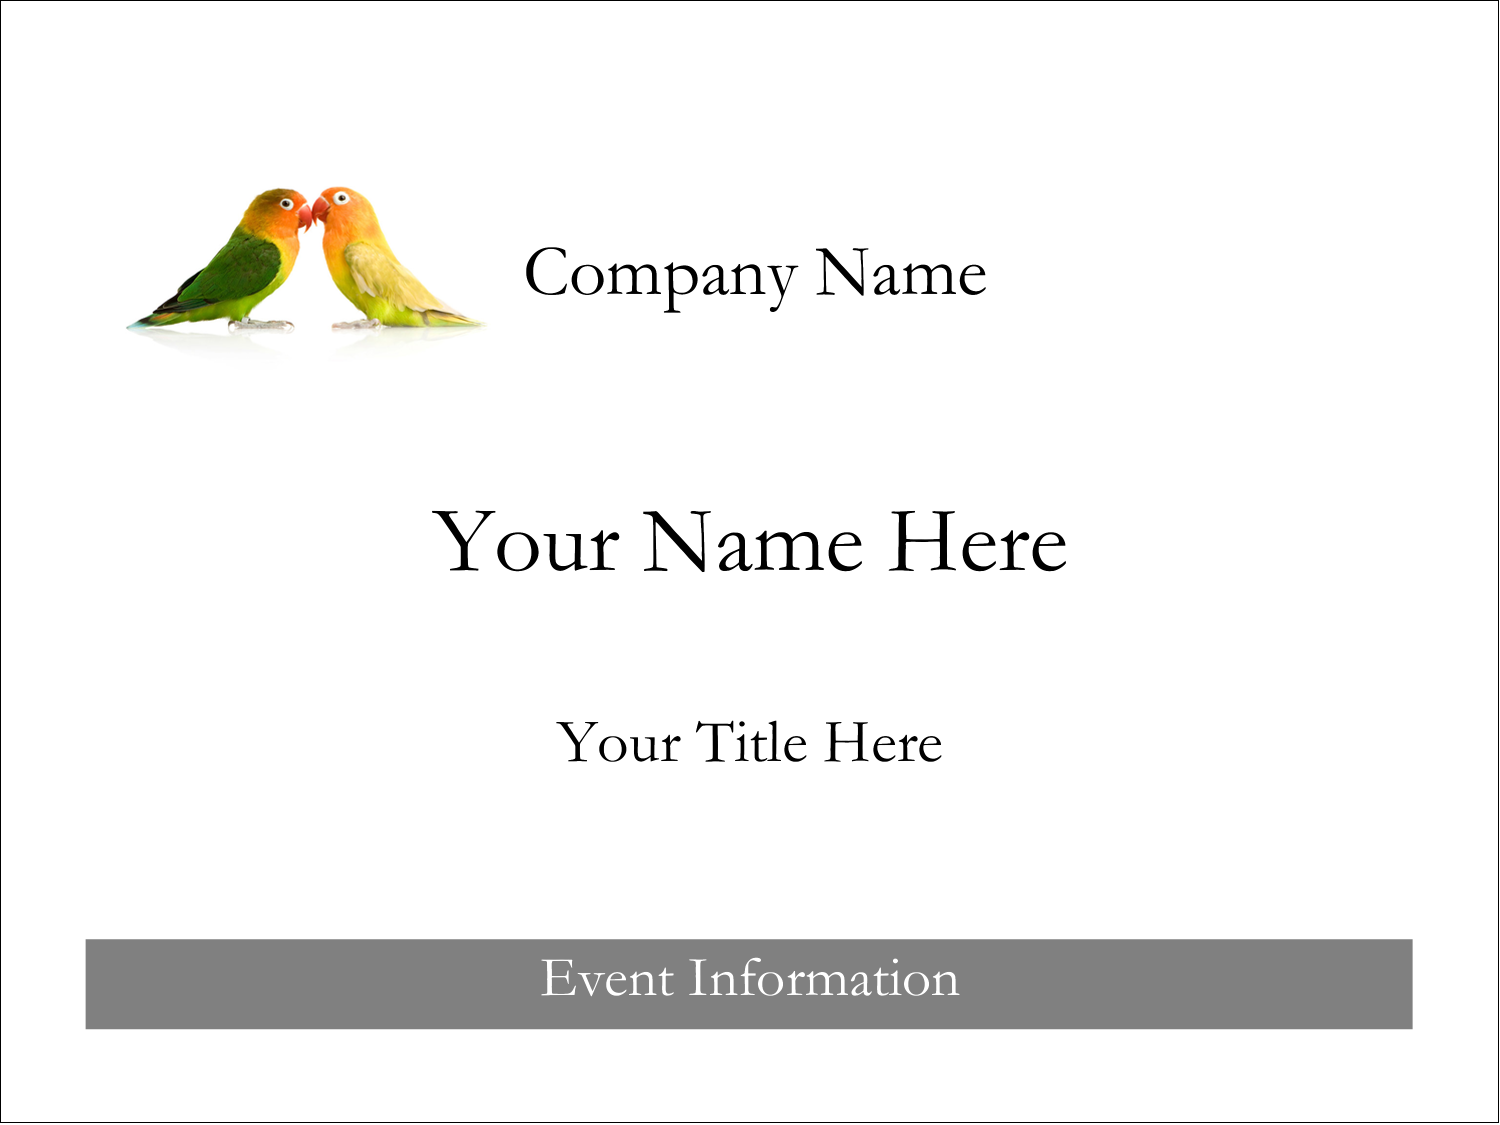 """3"""" x 4"""" Name Tags - Birds in Nature"""